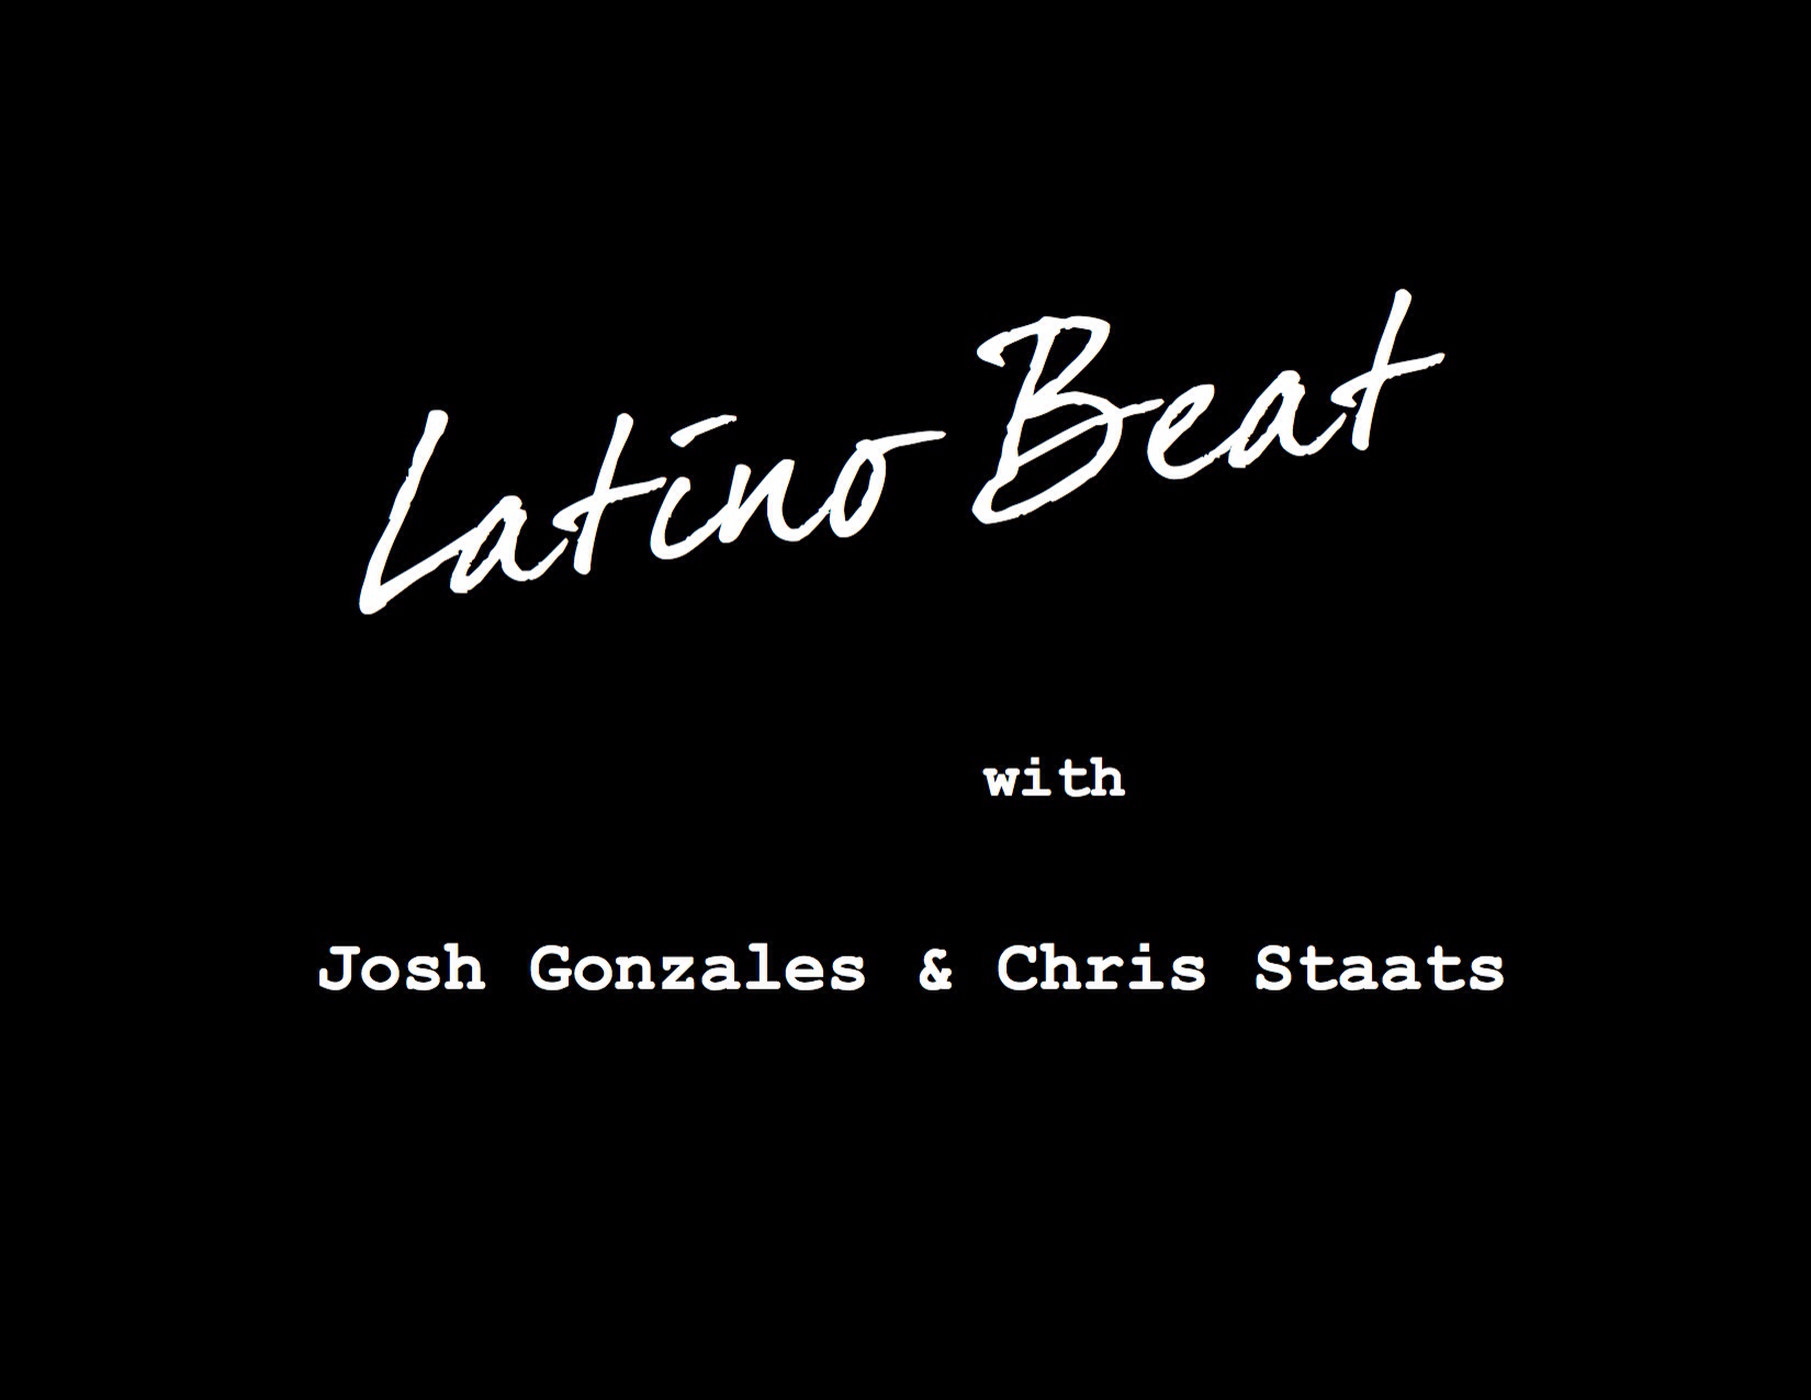 Latino Beat with Josh Gonzales and Chris Staats